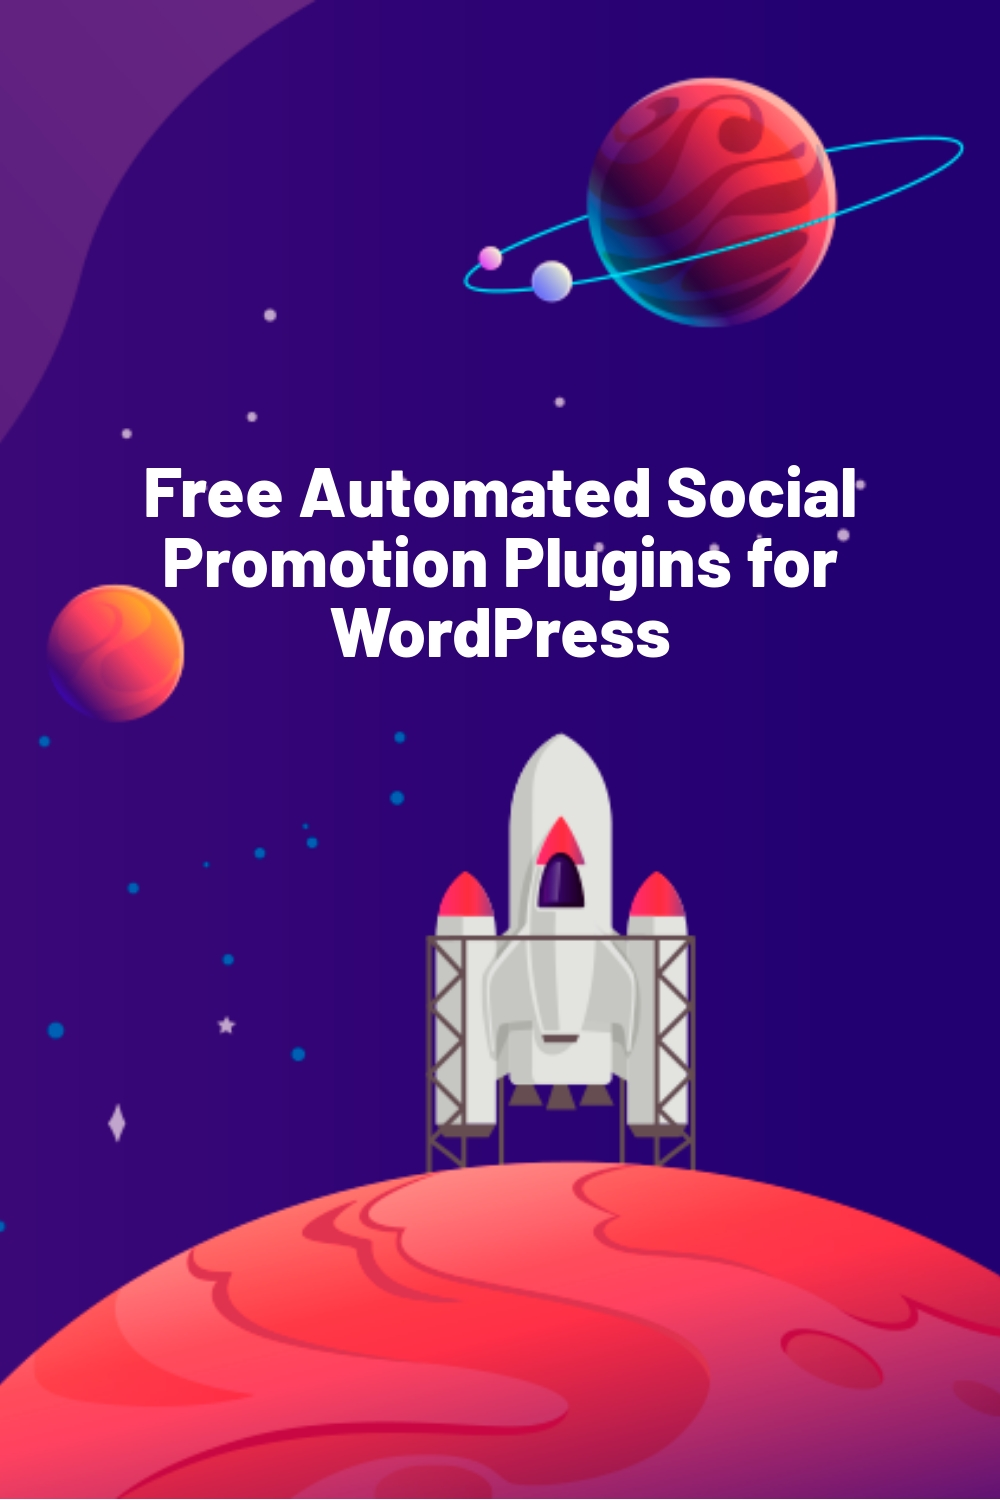 Free Automated Social Promotion Plugins for WordPress